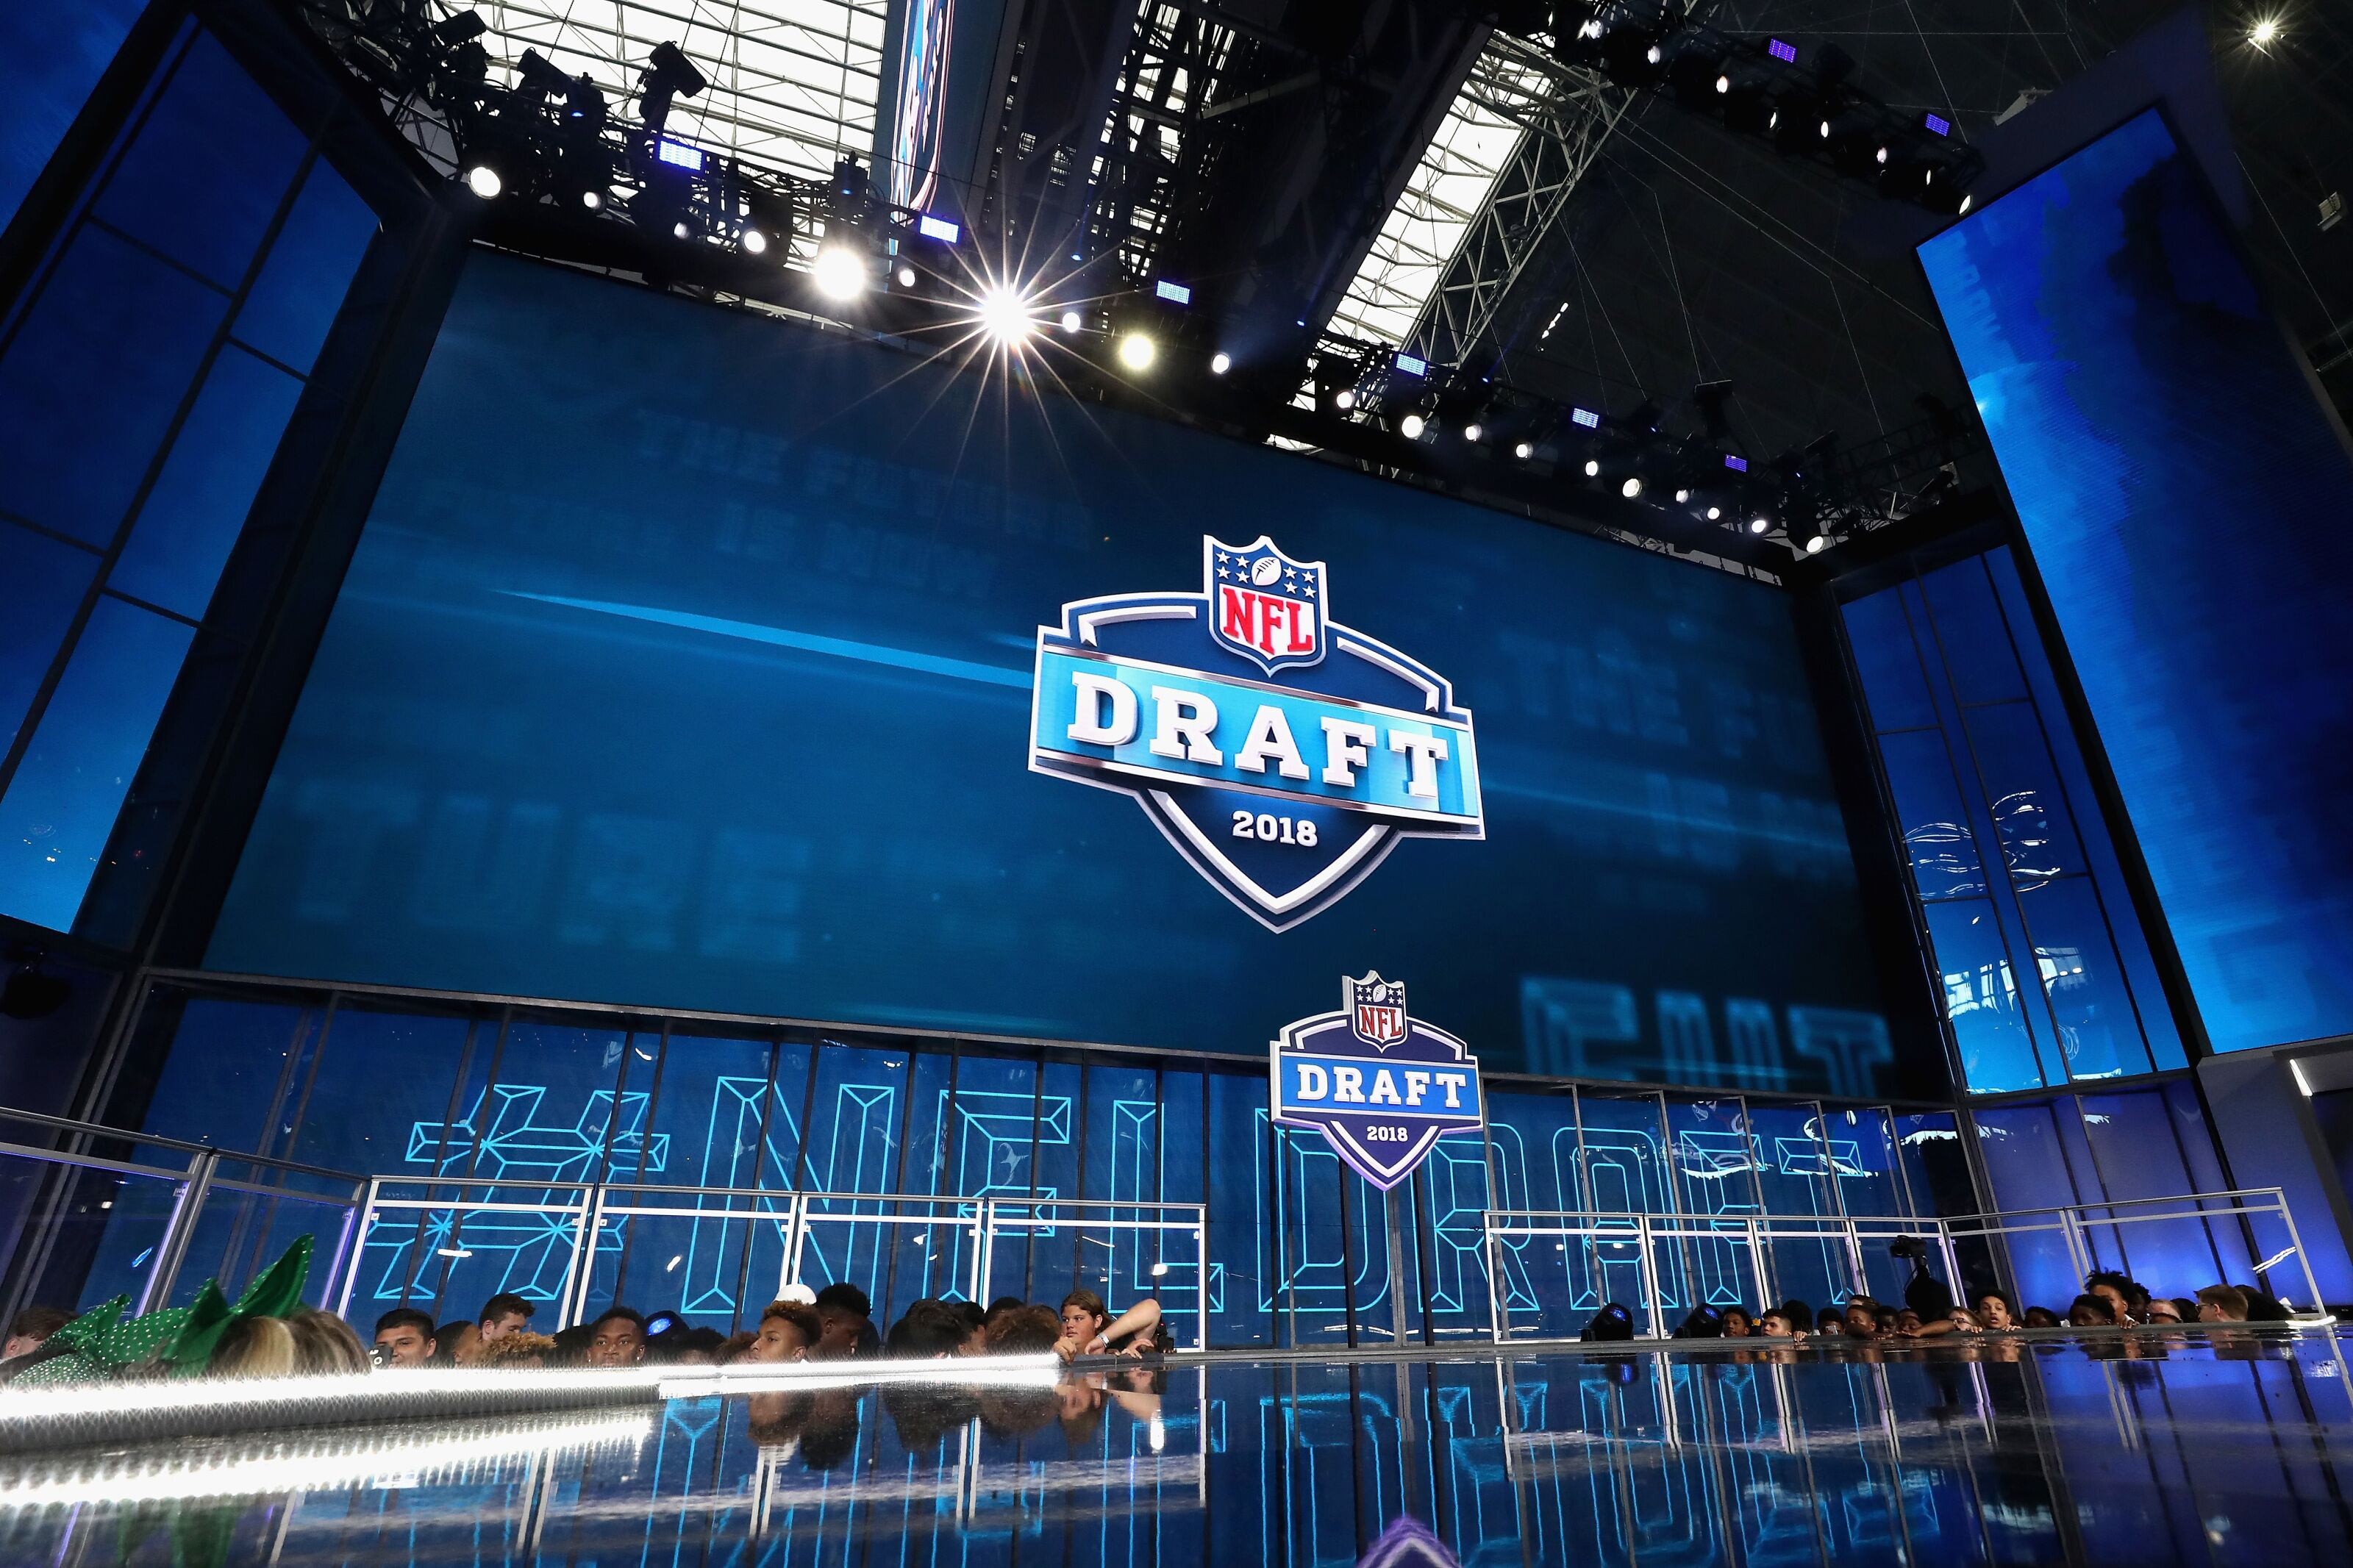 Jaguars 2019 NFL Draft: Three things you won't see Thursday night